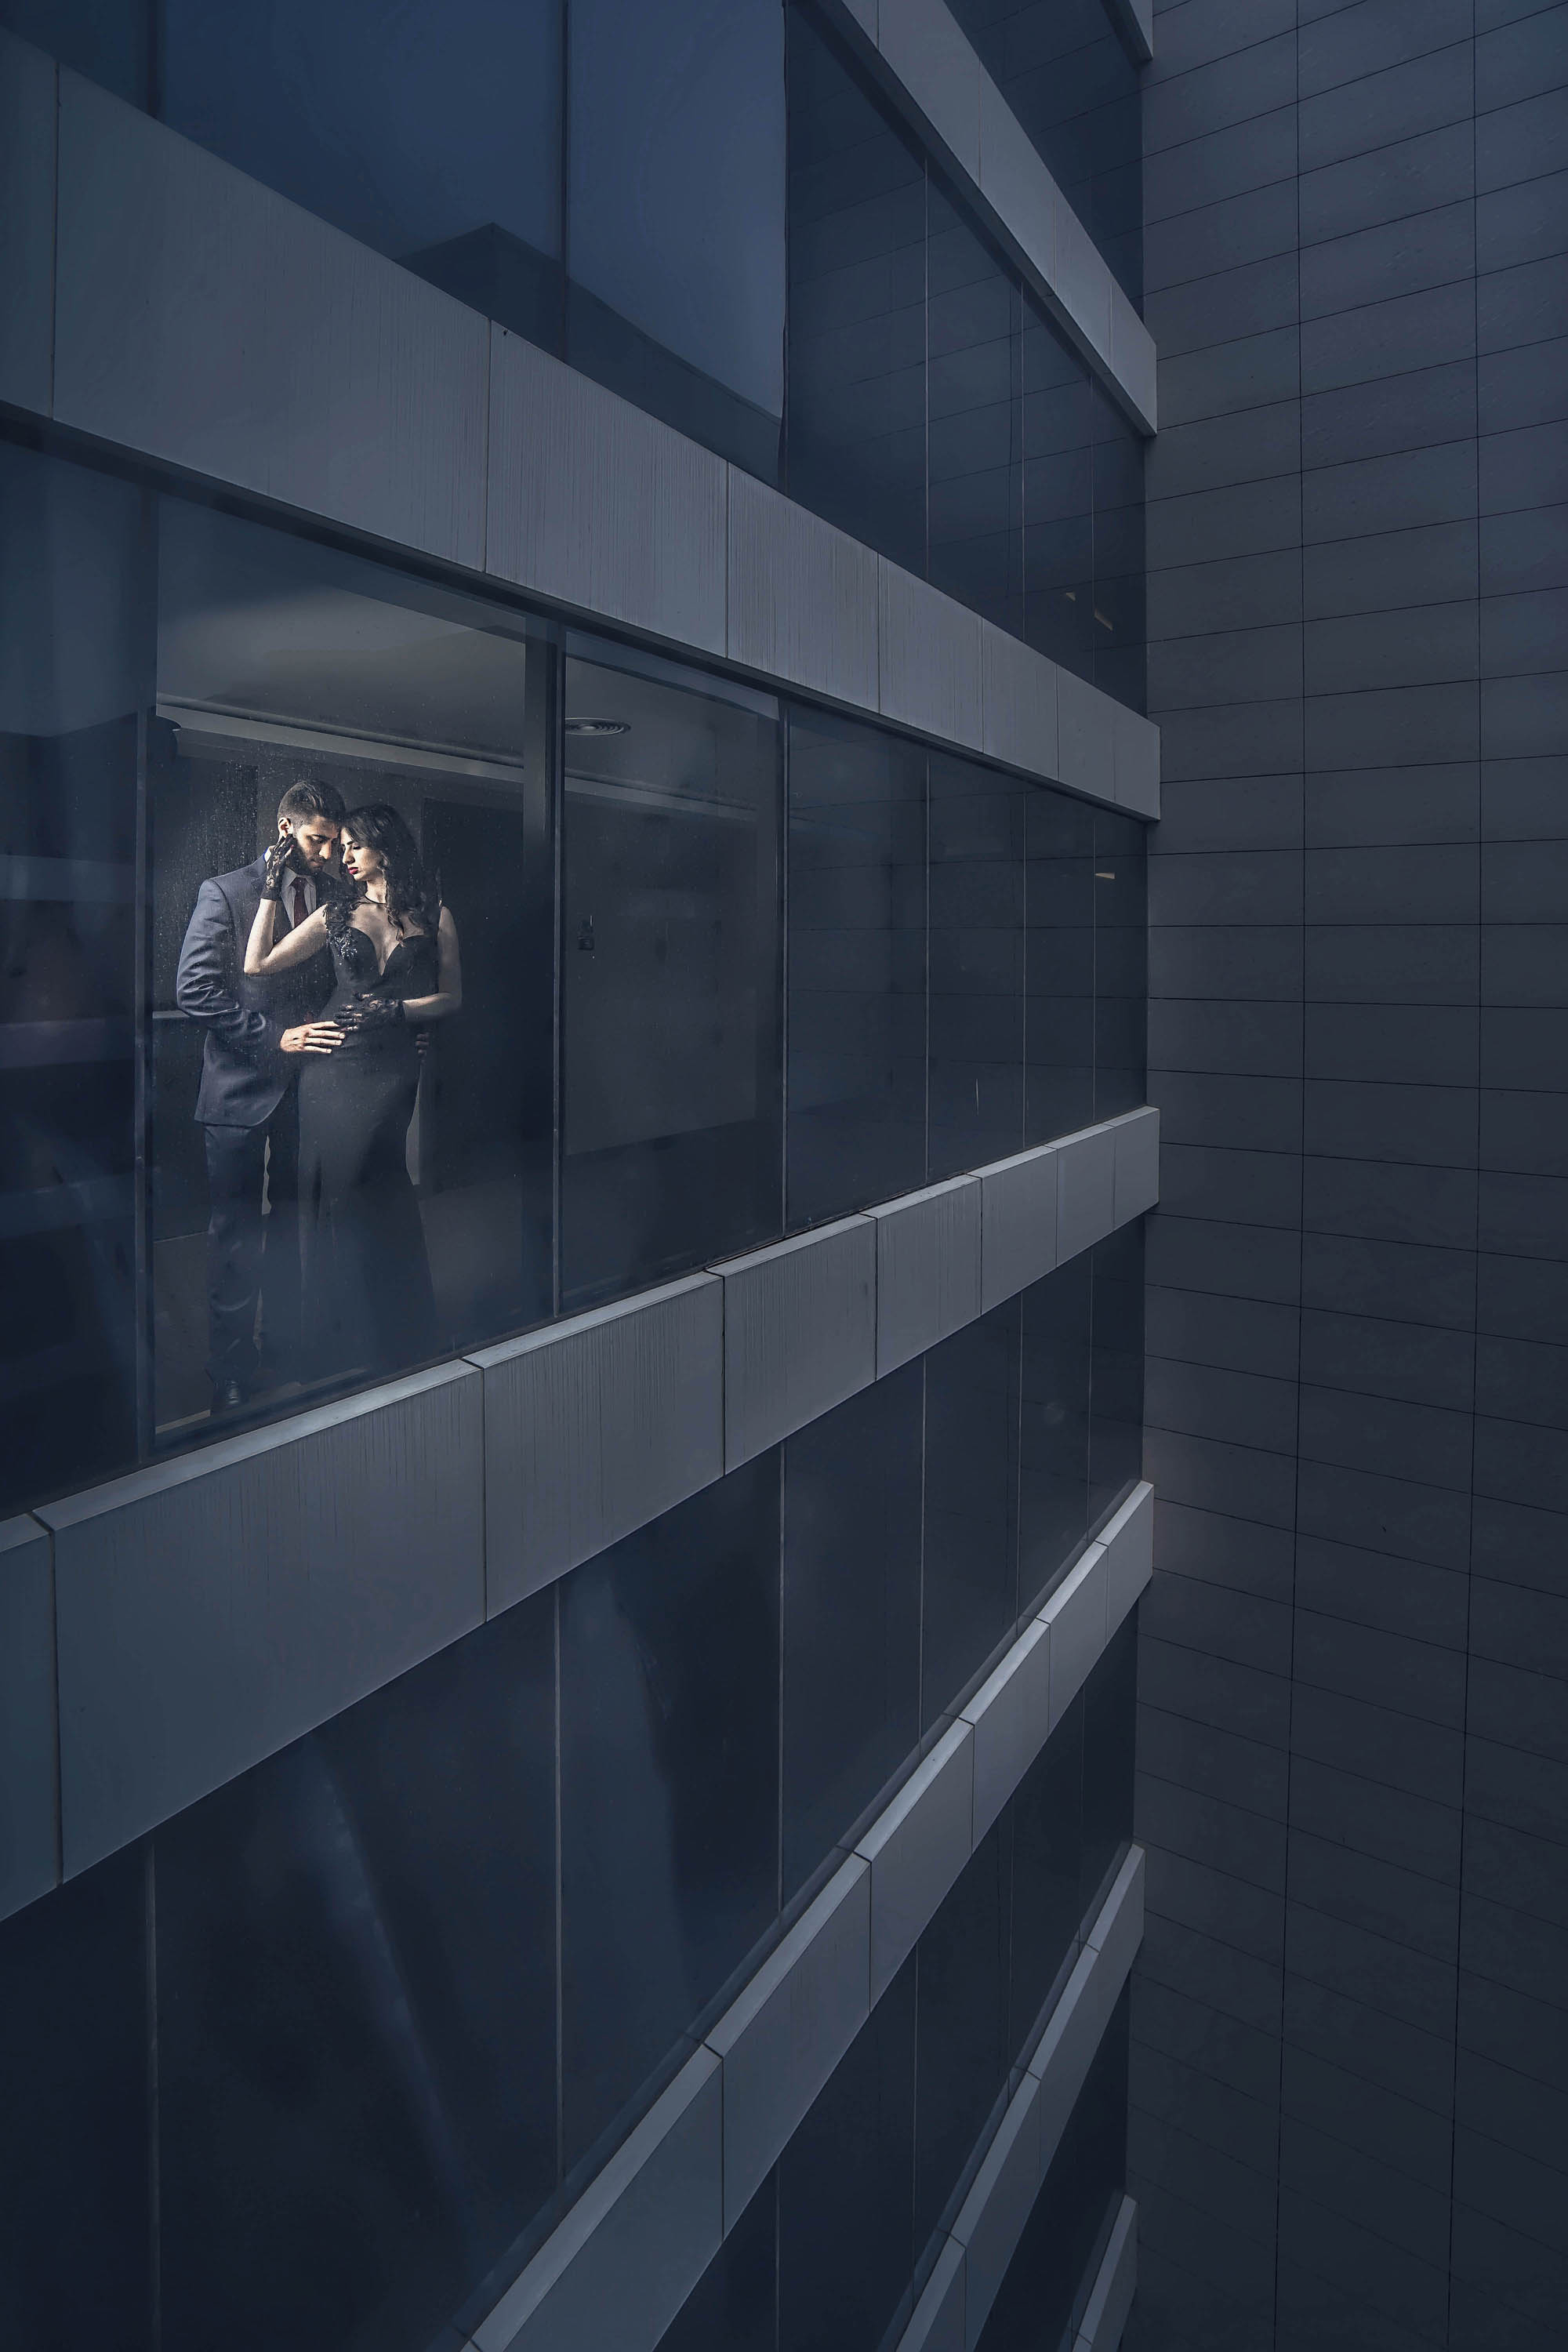 Bride and groom in black, in office building shot from outside